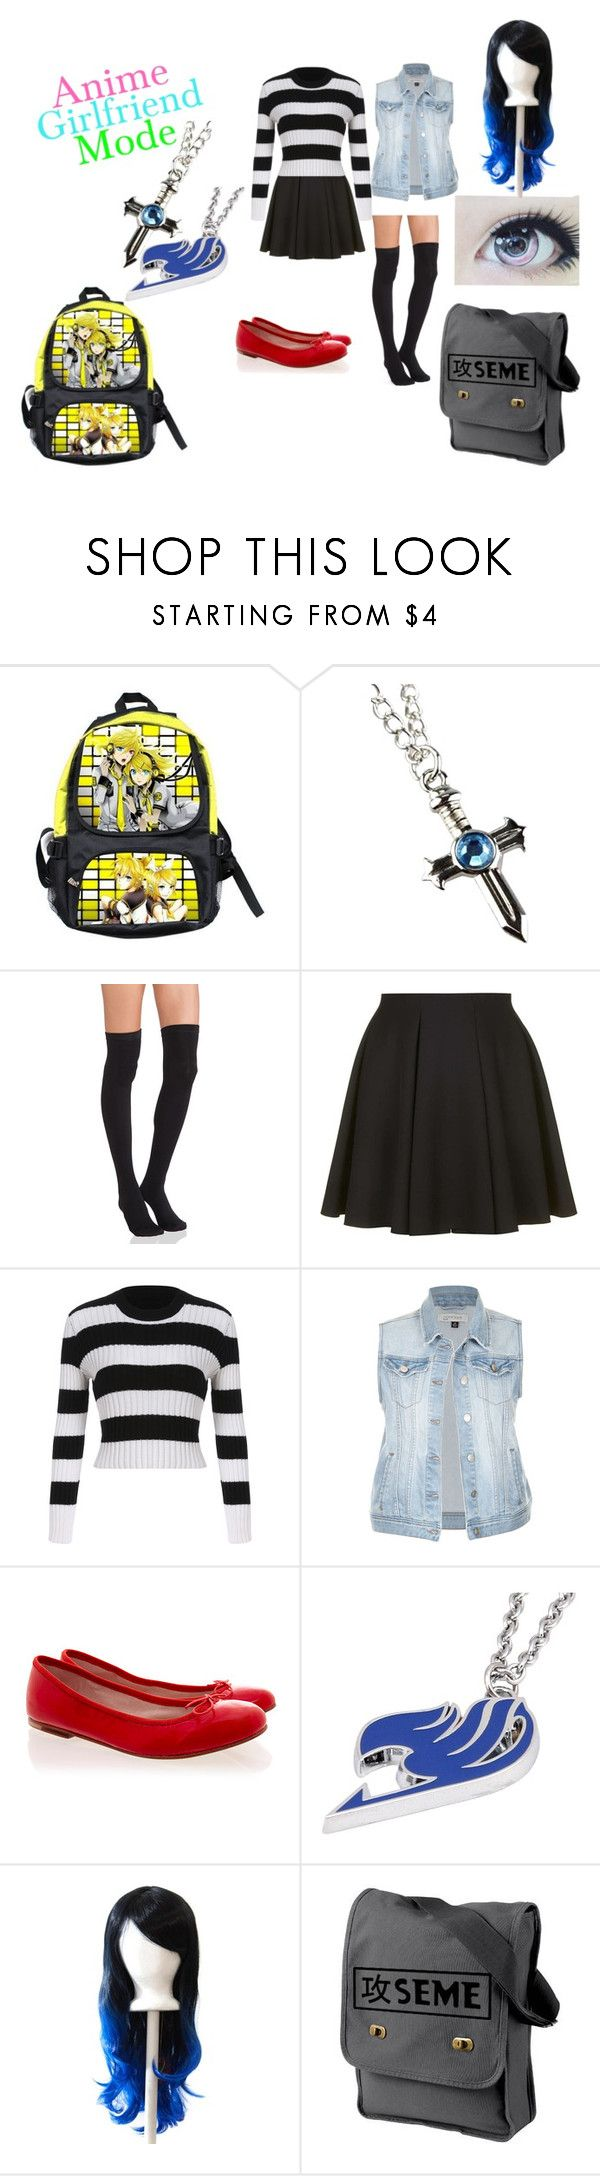 """""""Anime girlfriend"""" by the-princes-kitty ❤ liked on Polyvore featuring Plush, Topshop and Bloch"""